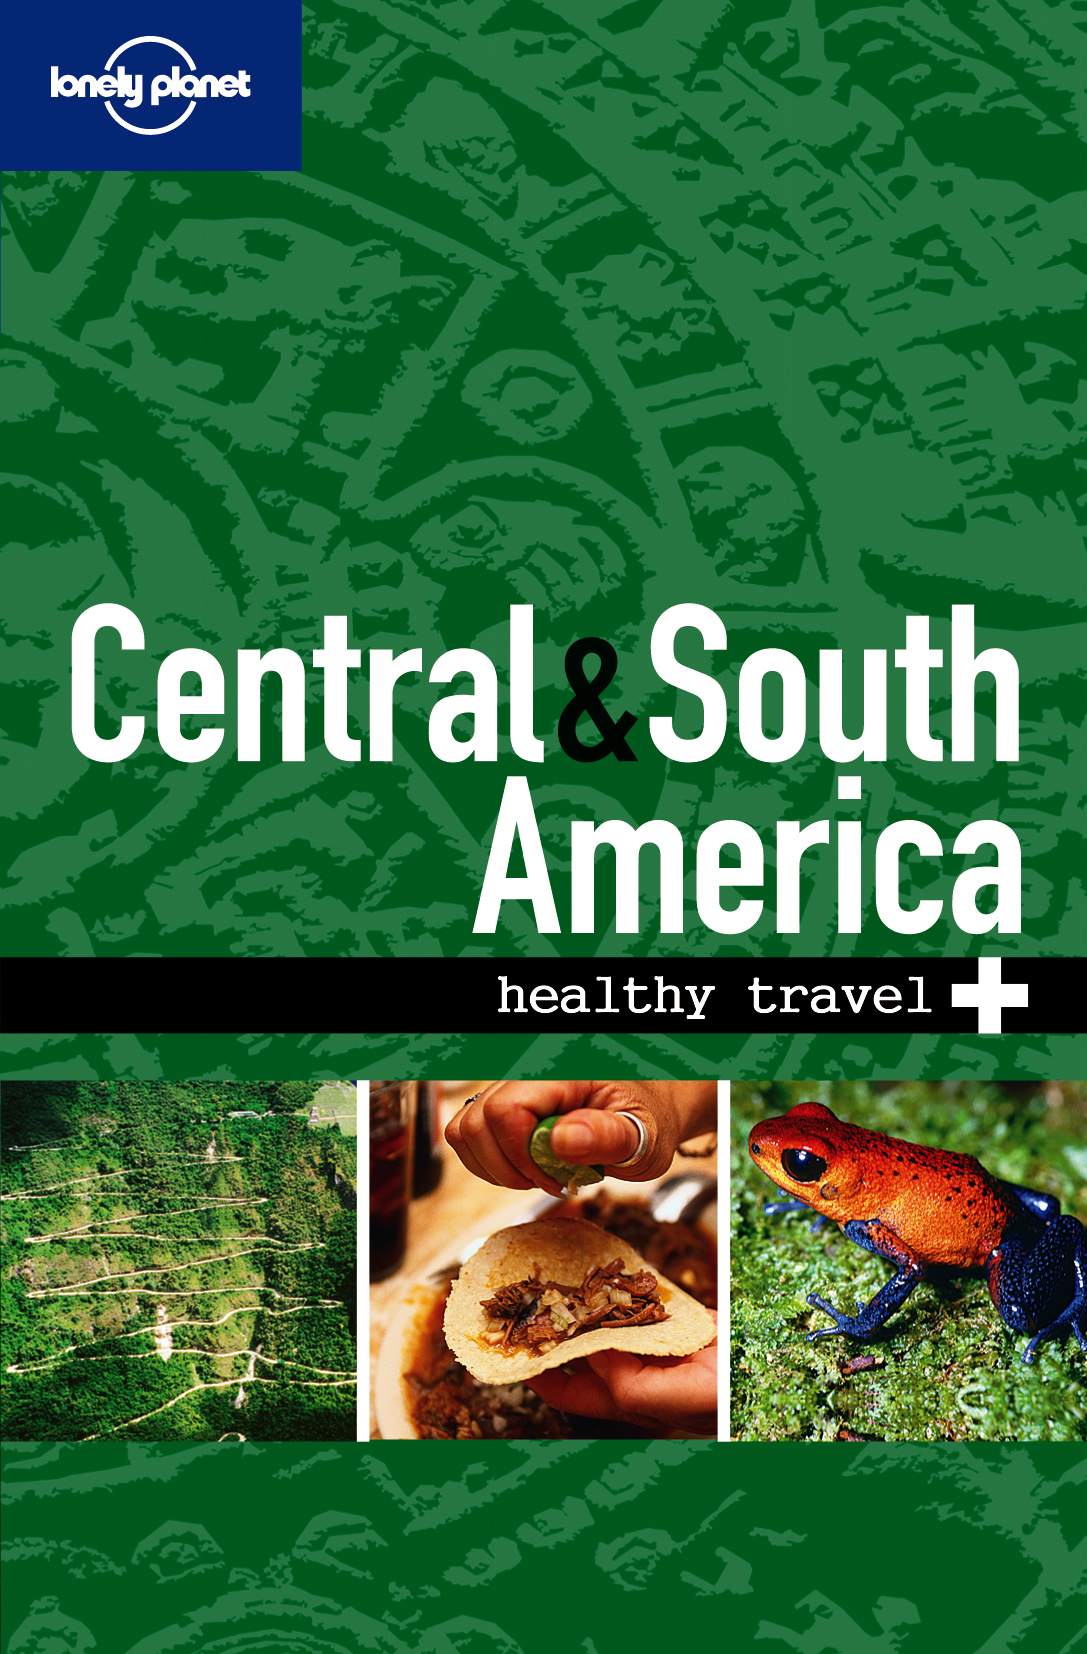 Lonely Planet Healthy Travel - Central & South America By: Lonely Planet